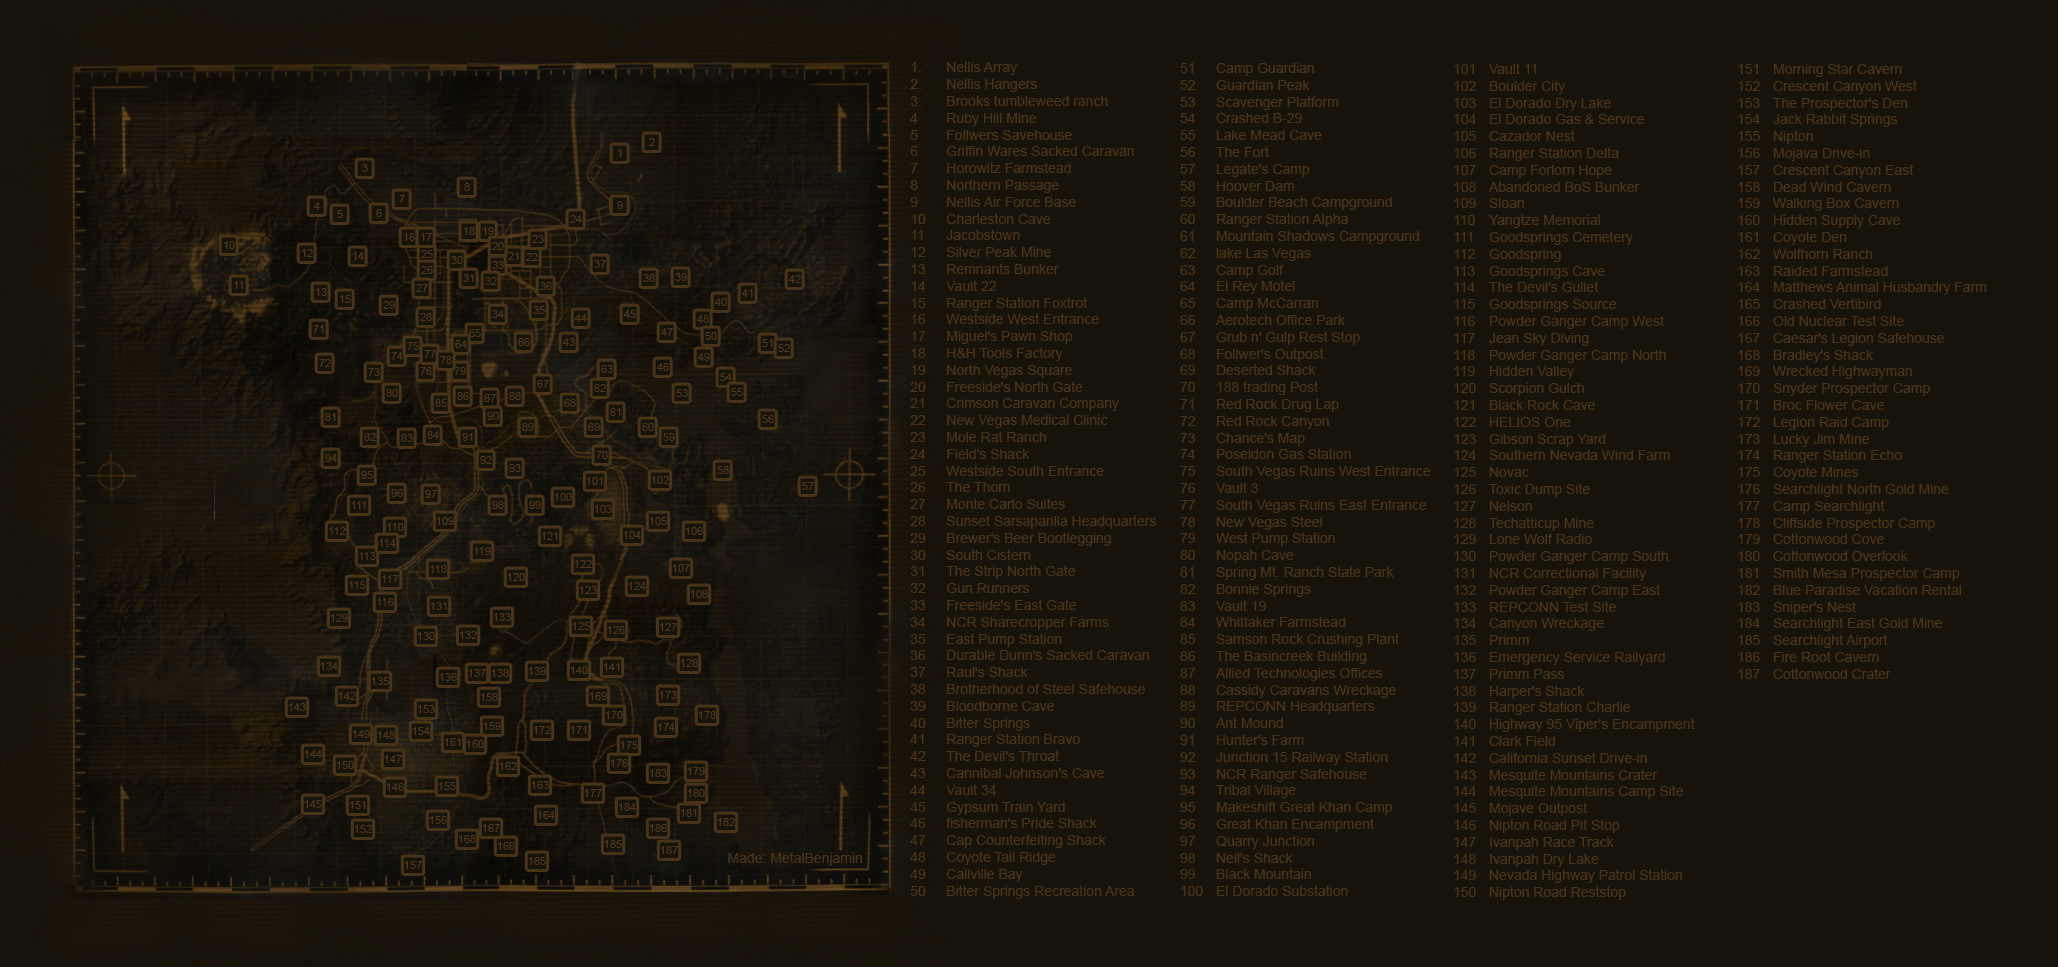 Fallout New Vegas Map with Names at Fallout New Vegas - mods and ...